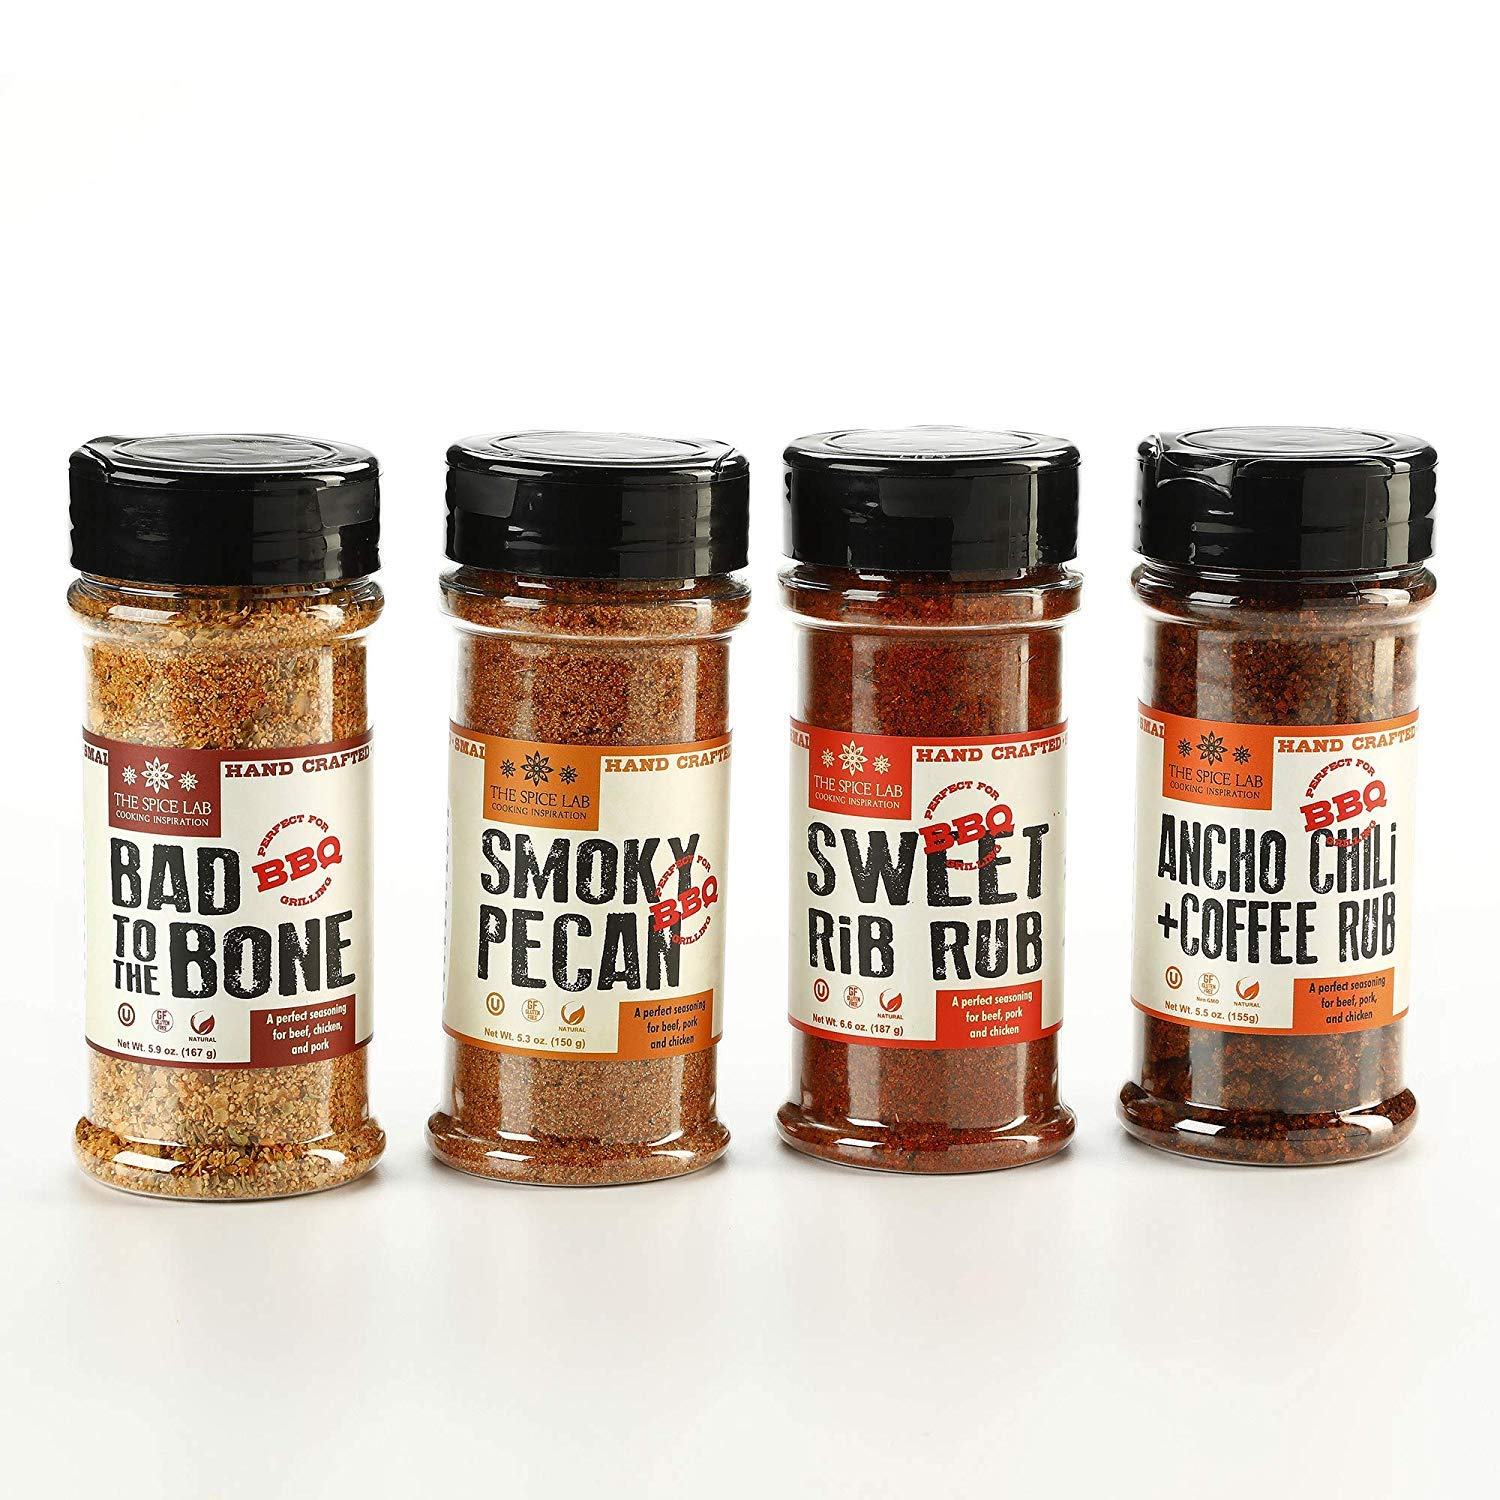 The Spice Lab BBQ Barbecue Spices and Seasonings Set. Bad to the Bone, Sweet Rib Rub, Smokey Pecan Rib Rub and Ancho Chili & Coffee. The hit of any bbq party, enjoy premium bbq seasoning blends with so much value packed into one gift collection. 2020 Valentine's Day Gift Guide from Jays Sweet N Sour Life Blog.